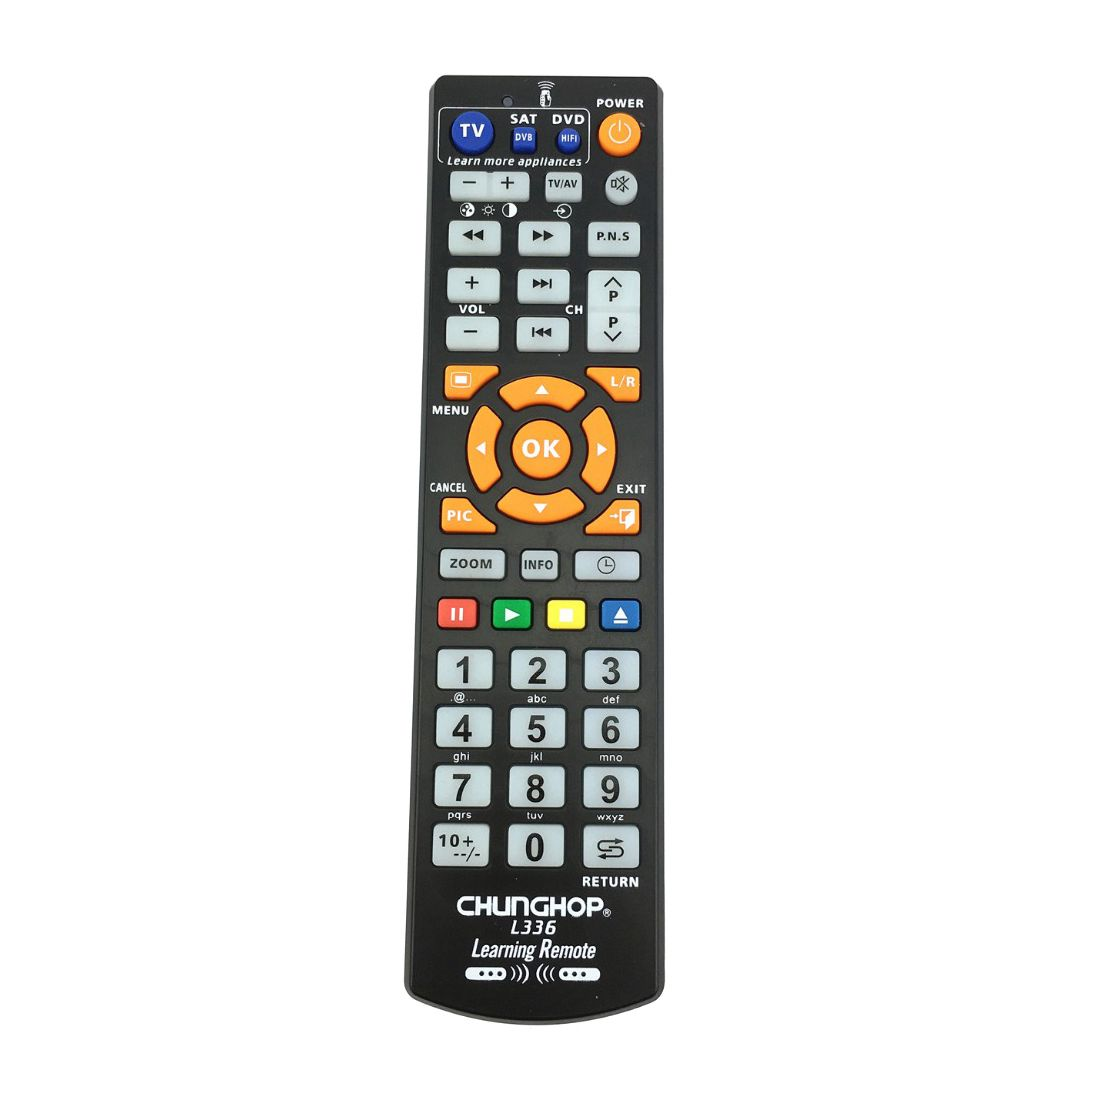 CHUNGHOP L336 Copy Smart Remote Control Controller With Learn Function For TV CBL DVD SAT learning